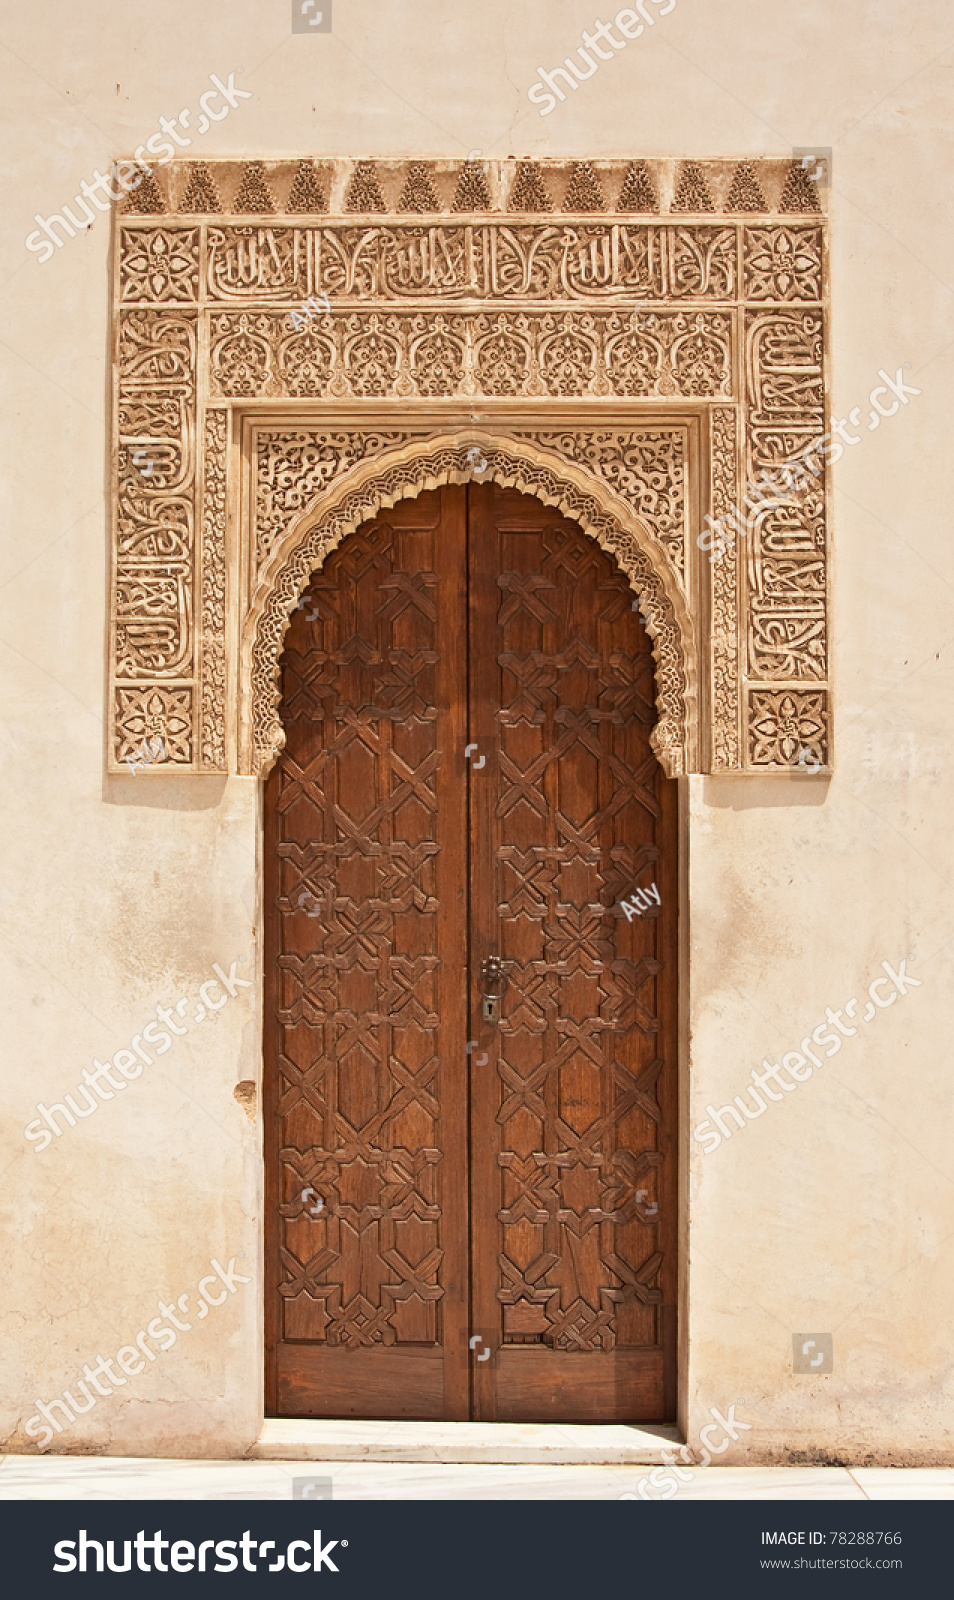 A door decorated in arabic style in Alhambra Moorish palace in Granada Andalusia Spain & Door Decorated Arabic Style Alhambra Moorish Stock Photo 78288766 ...